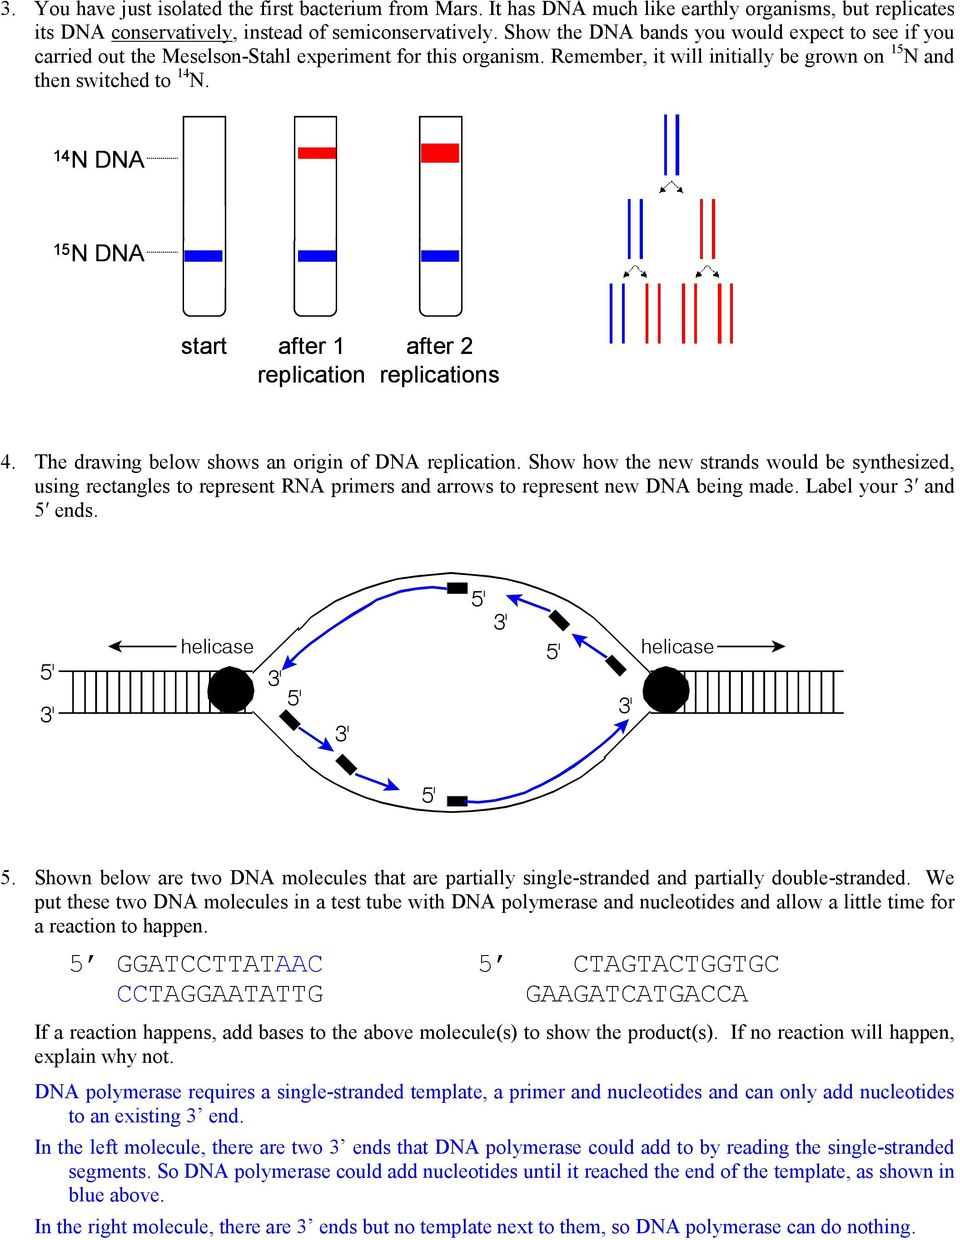 Bio 102 Practice Problems Chromosomes and DNA Replication - PDF